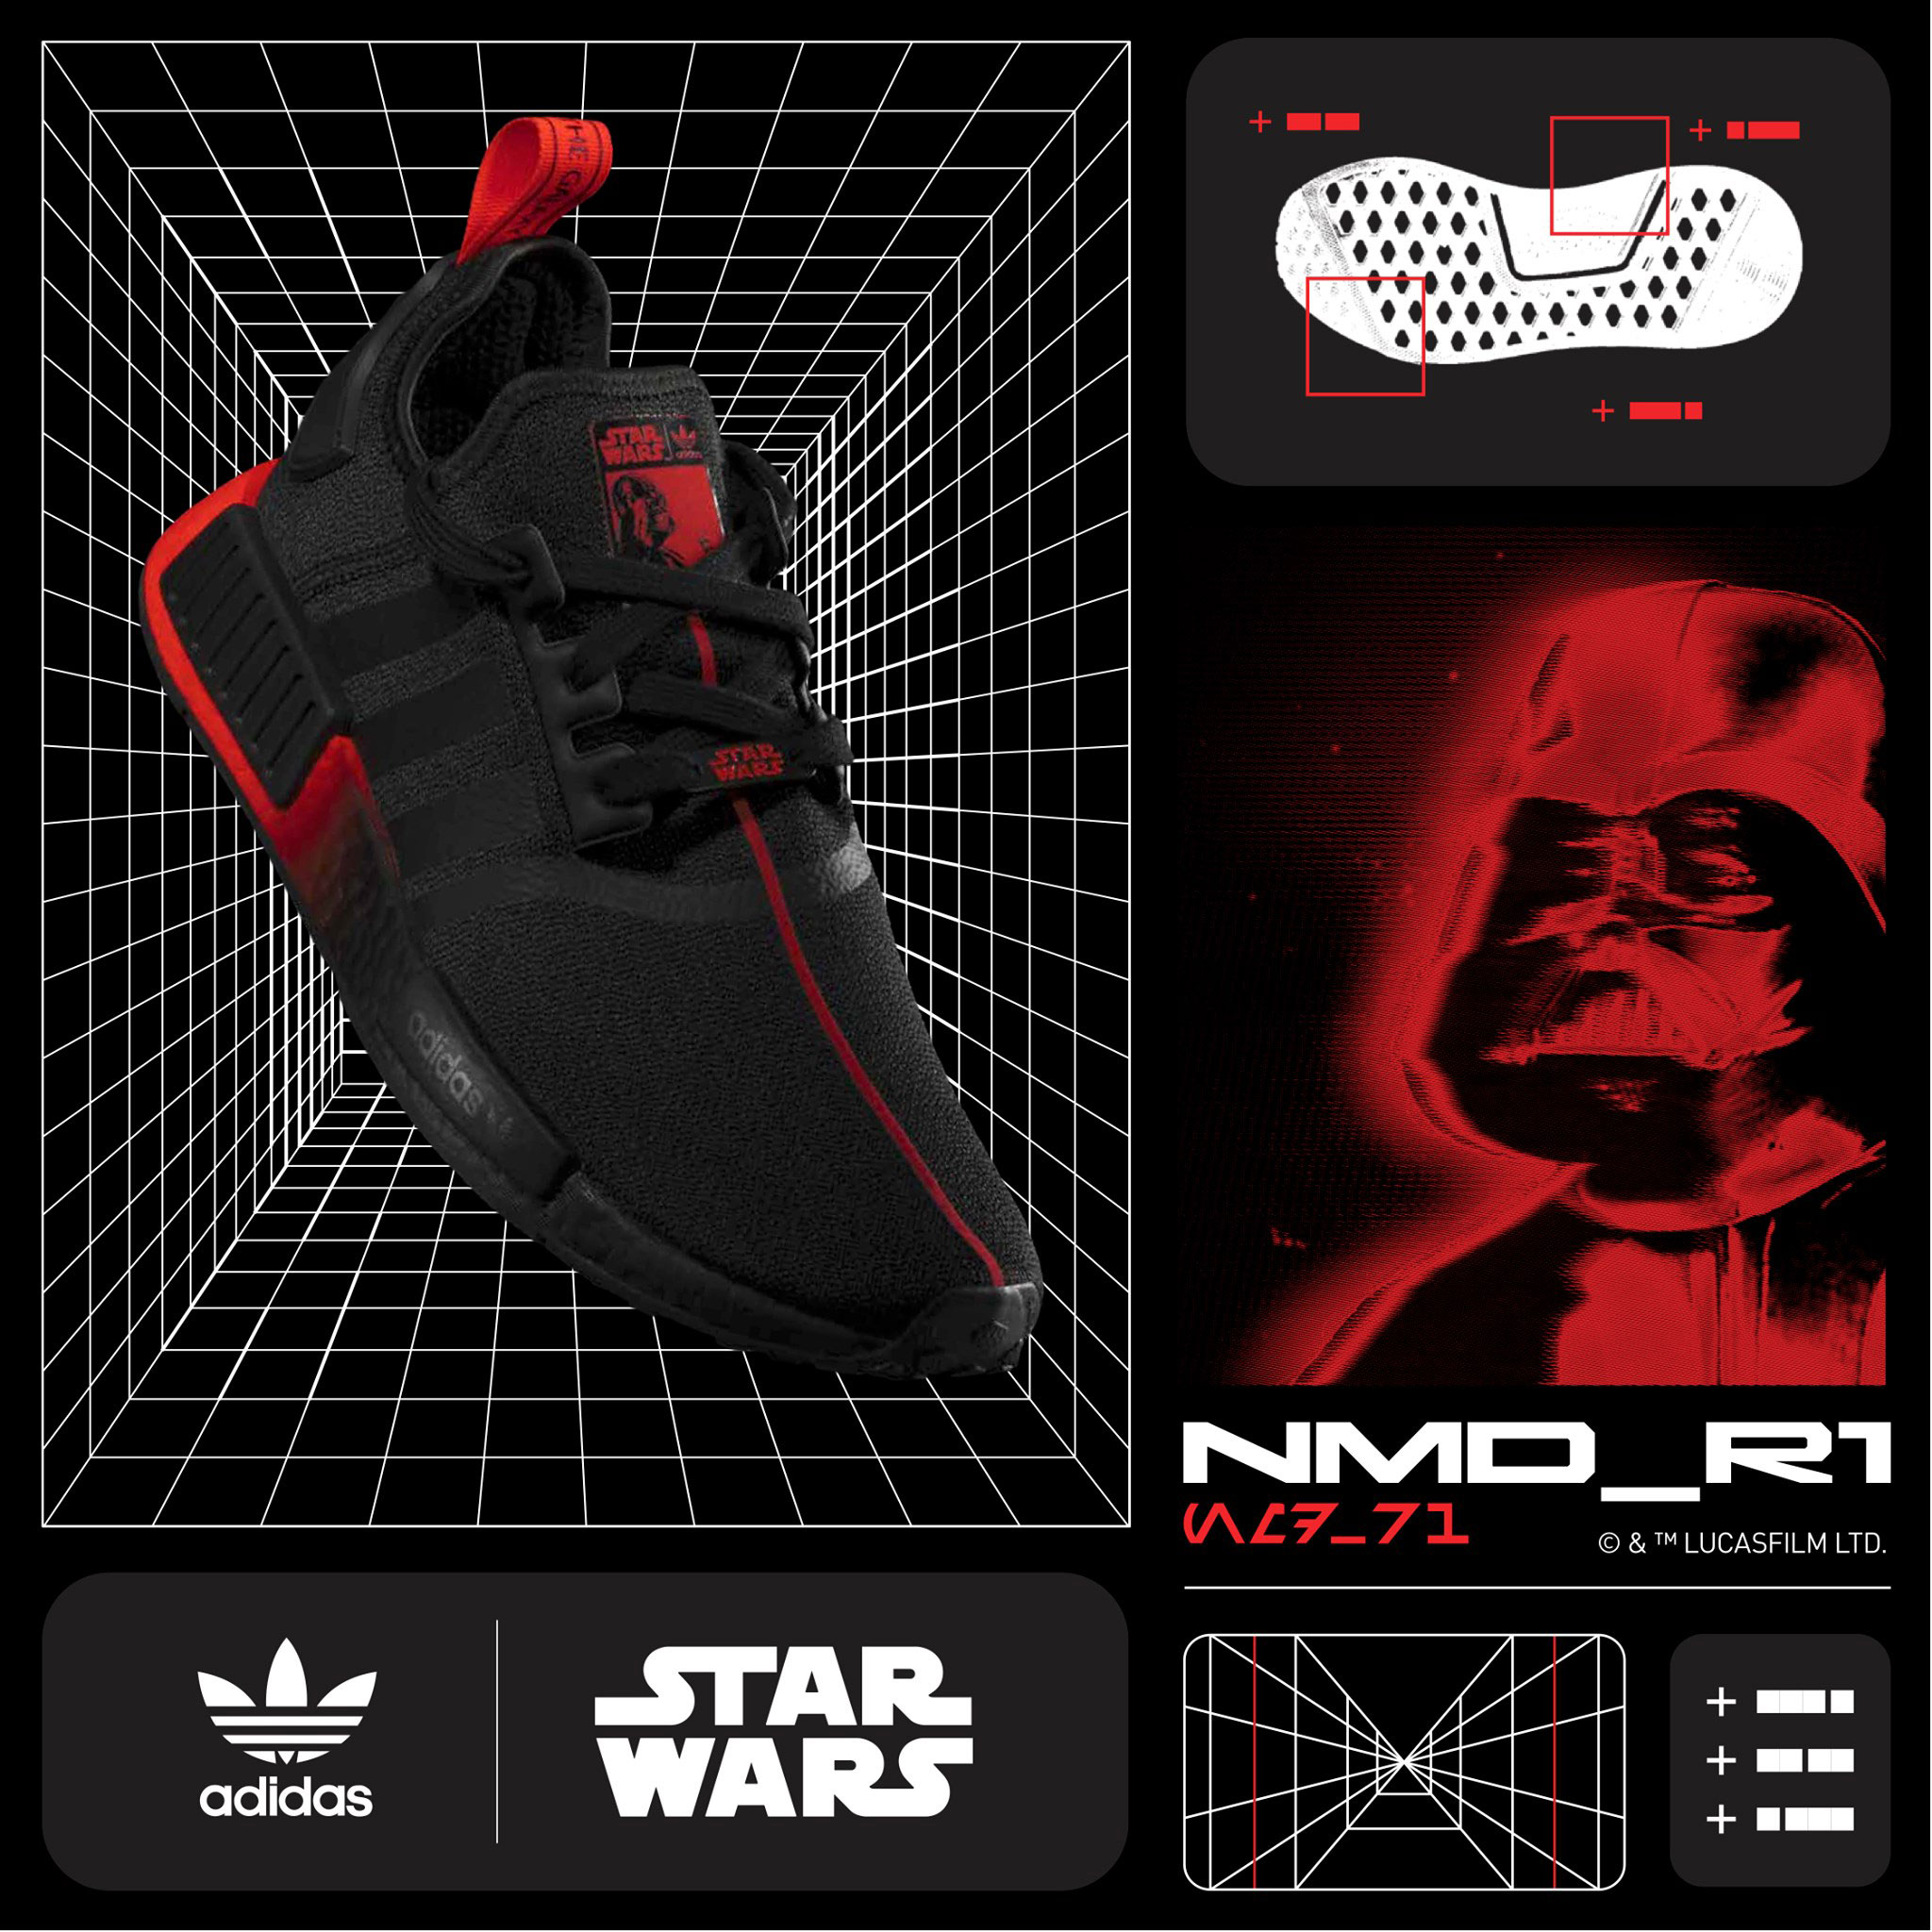 star-wars-adidas-nmd-r1-darth-vader